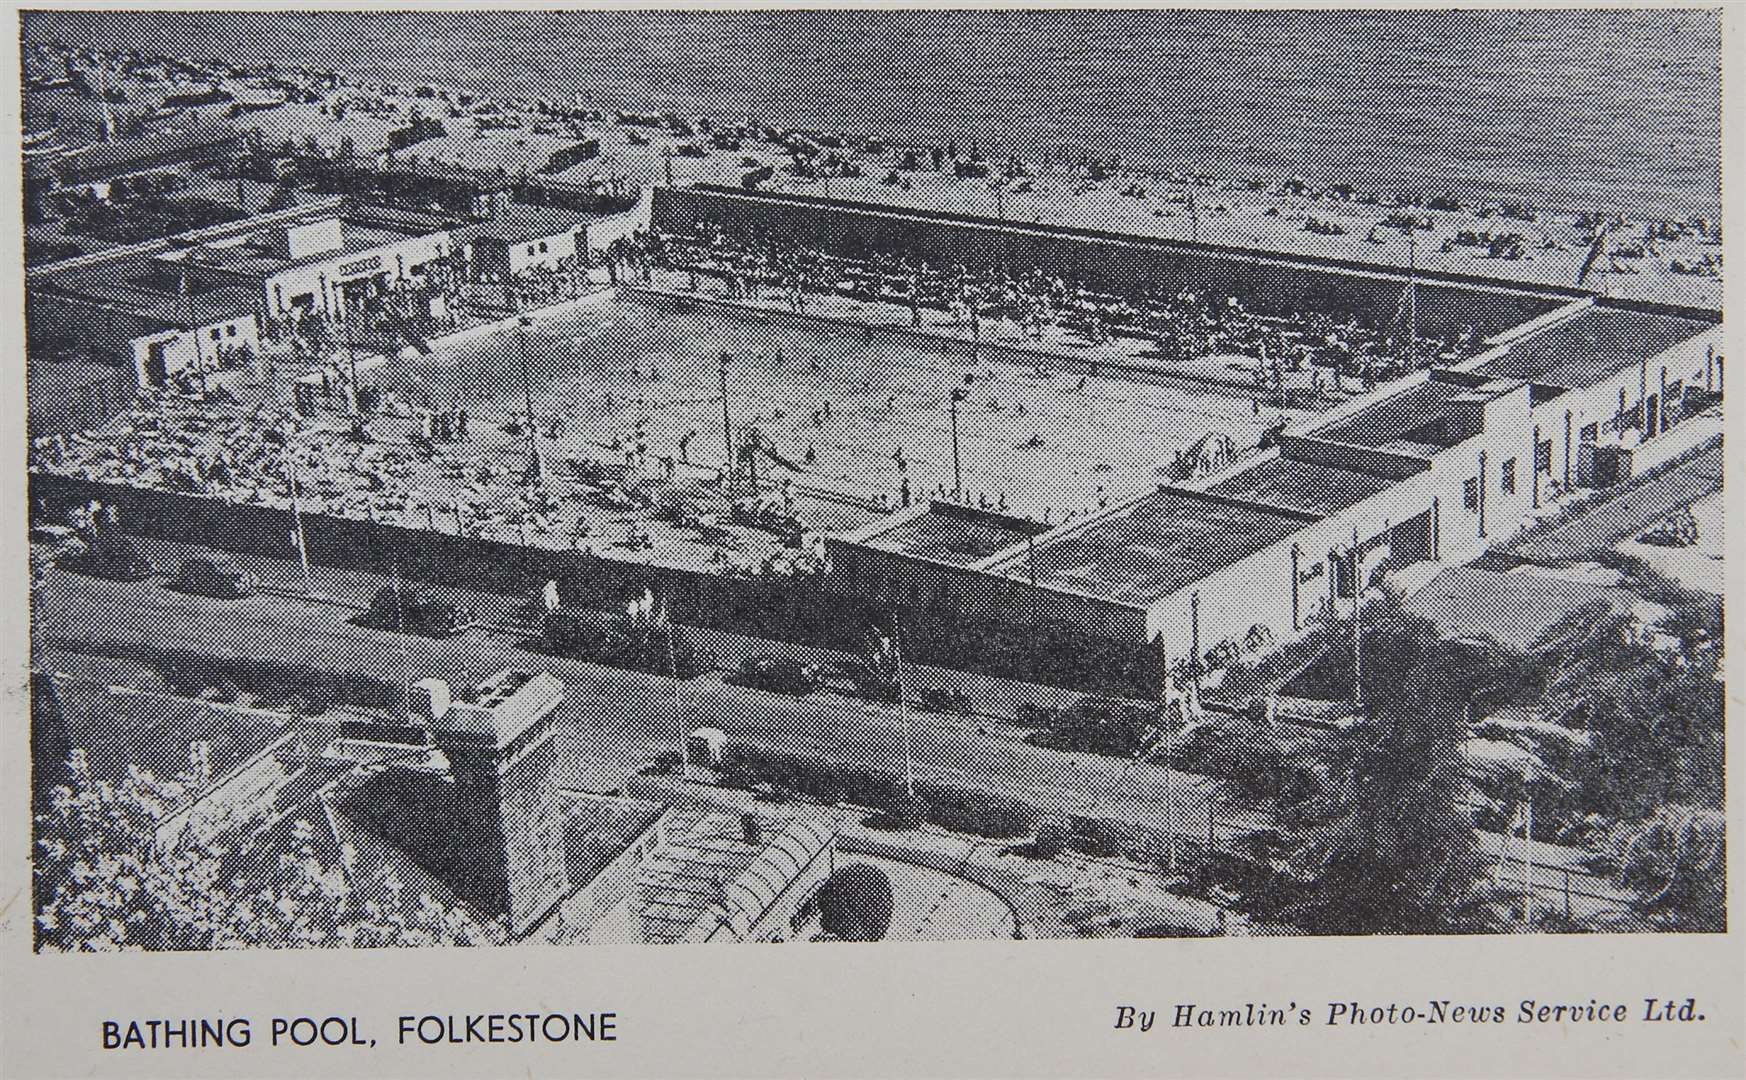 The bathing pool in Folkestone, a postcard from Shaun Allon's collection